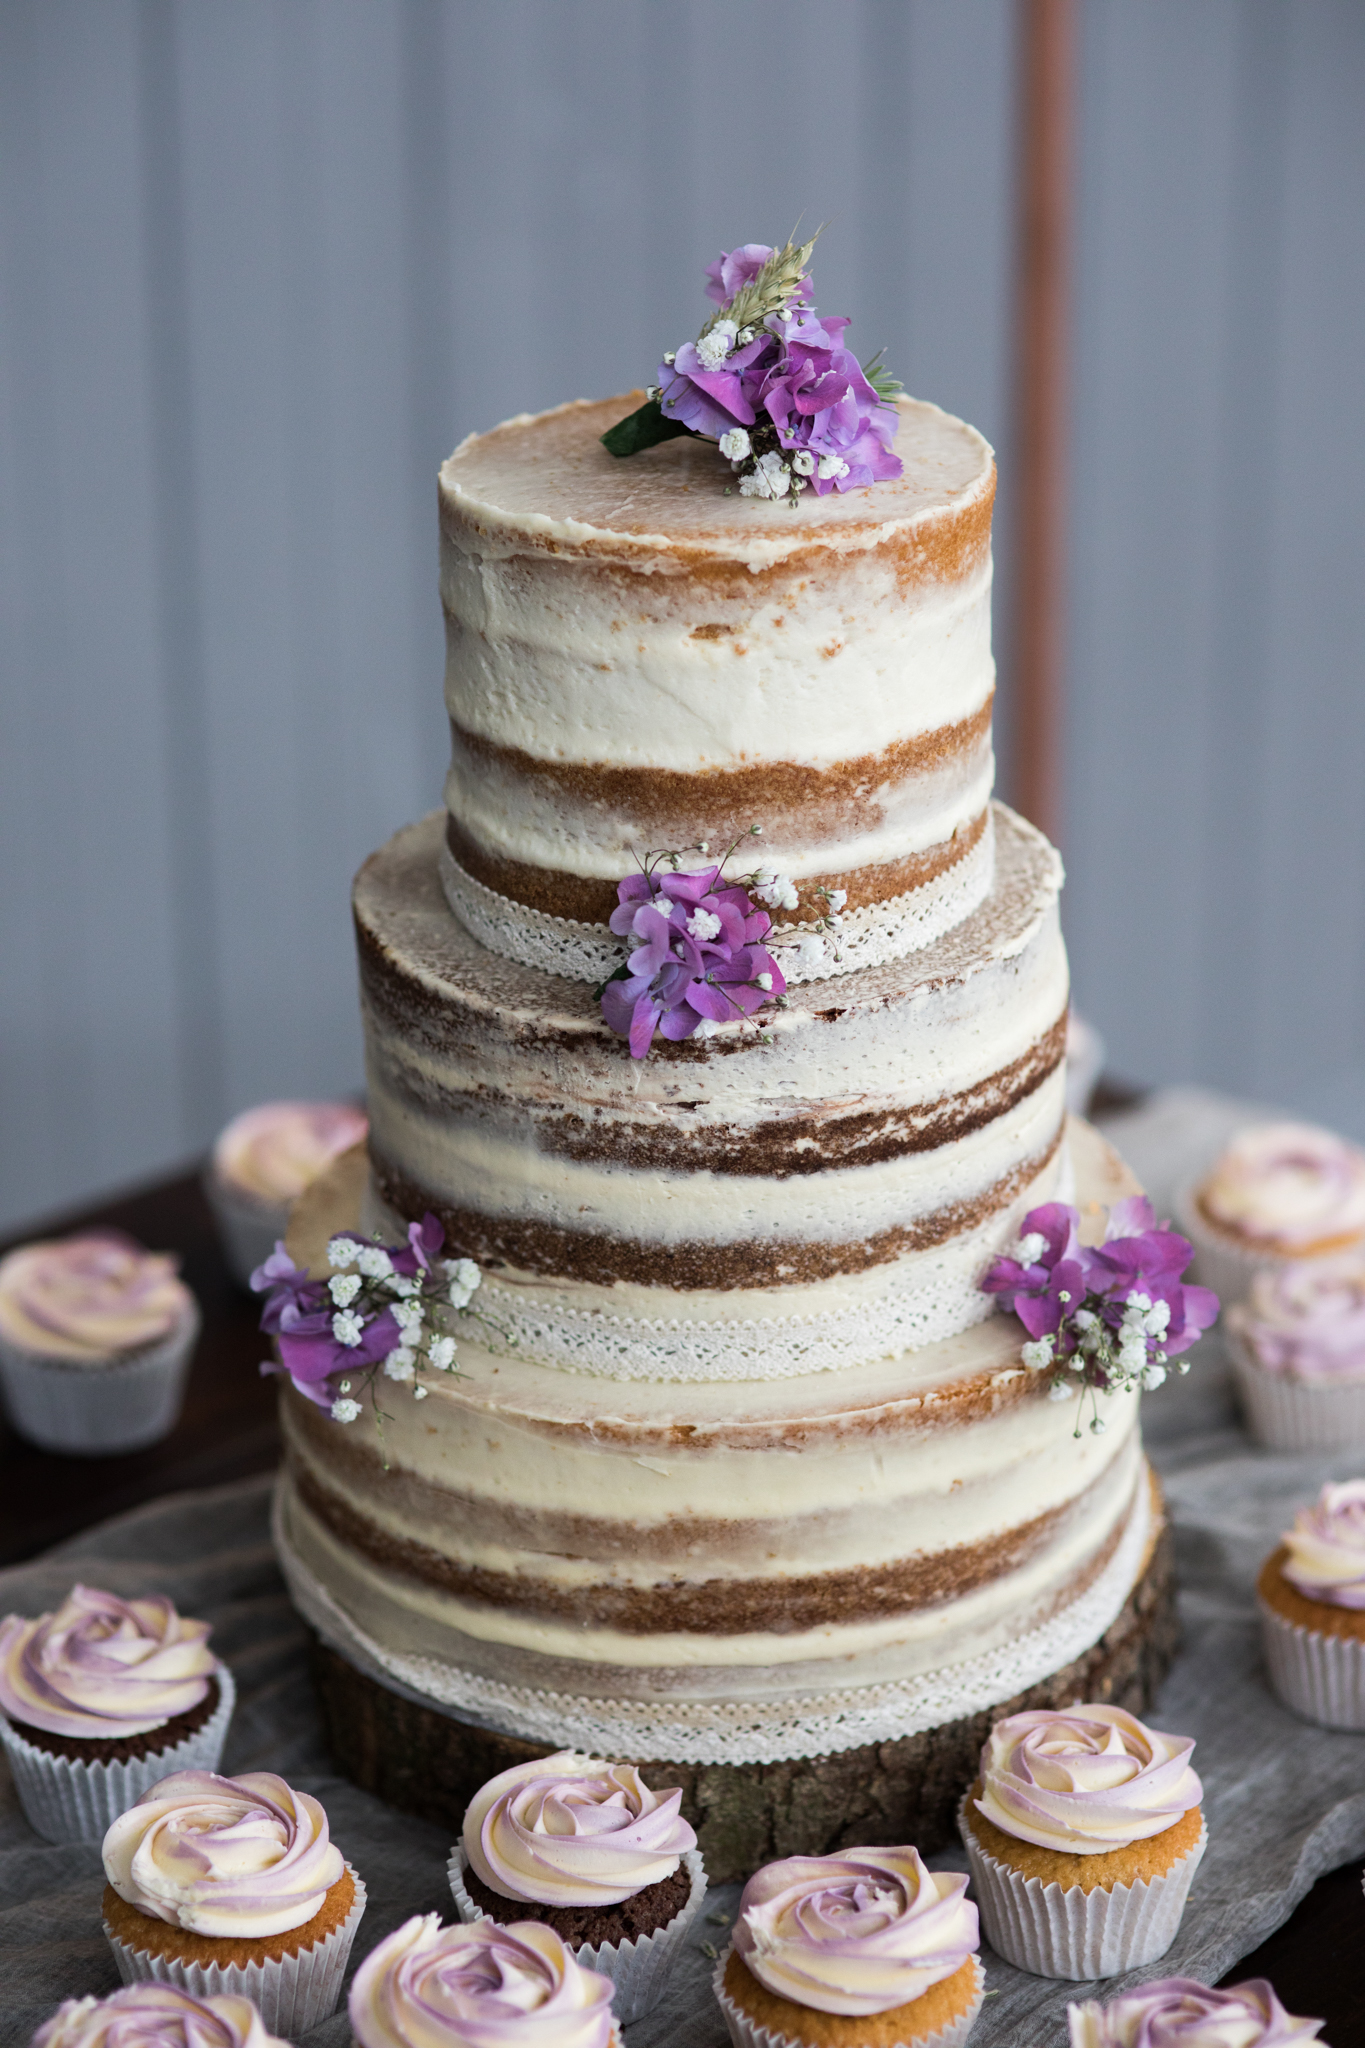 cupcake-weddingcake-1-2.jpg